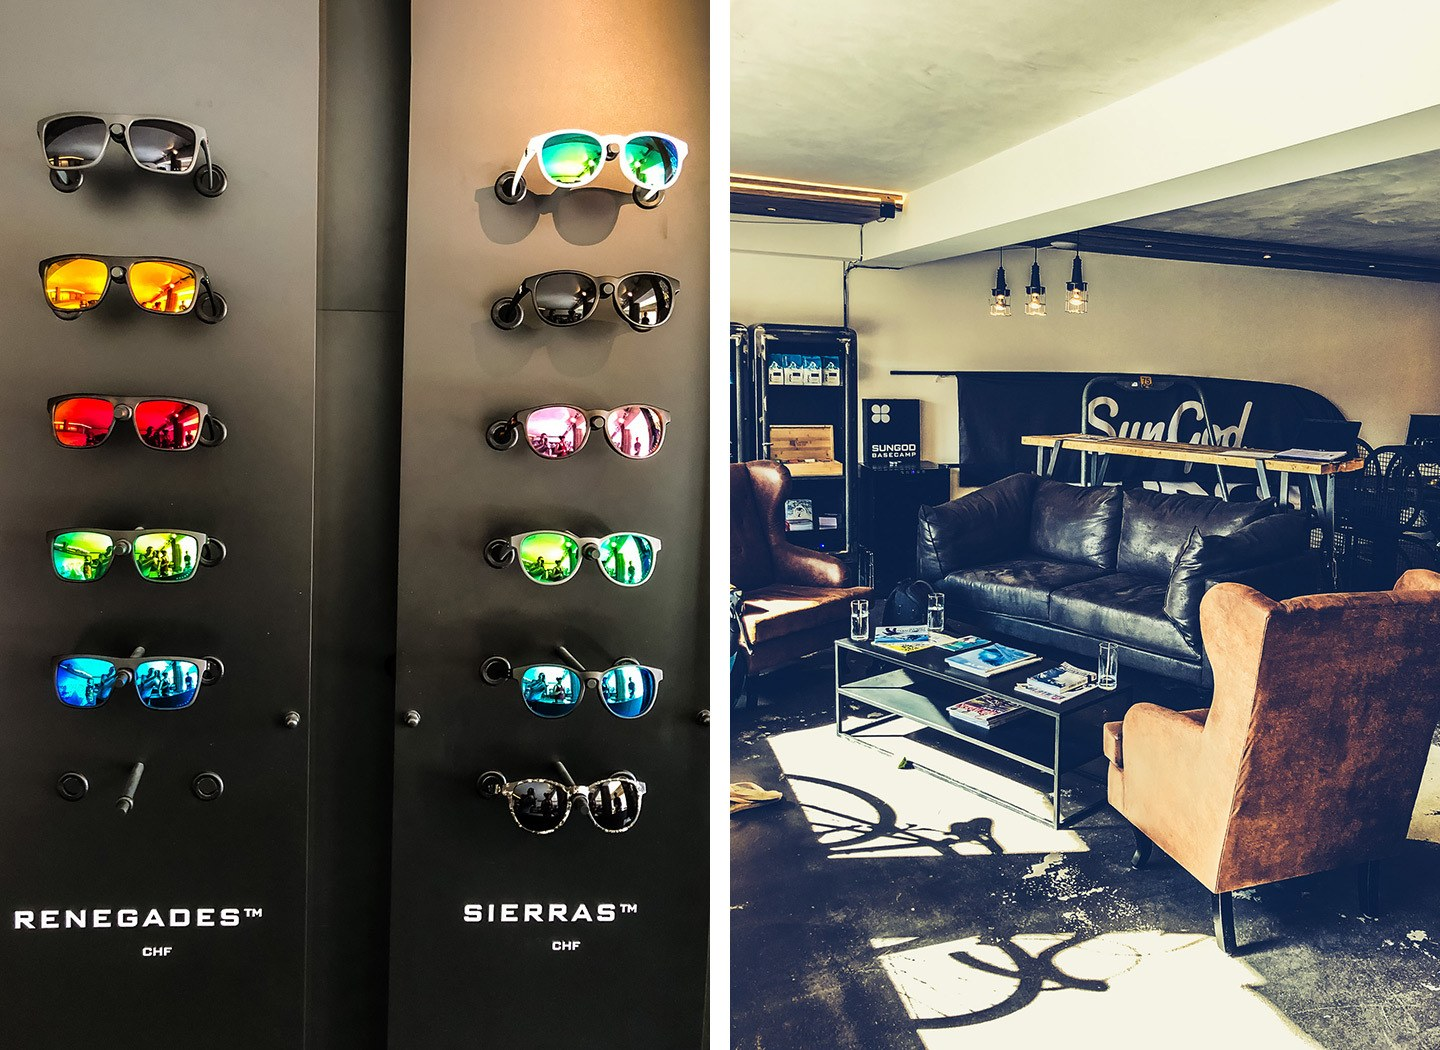 Custom made sunglasses at SunGod in Verbier